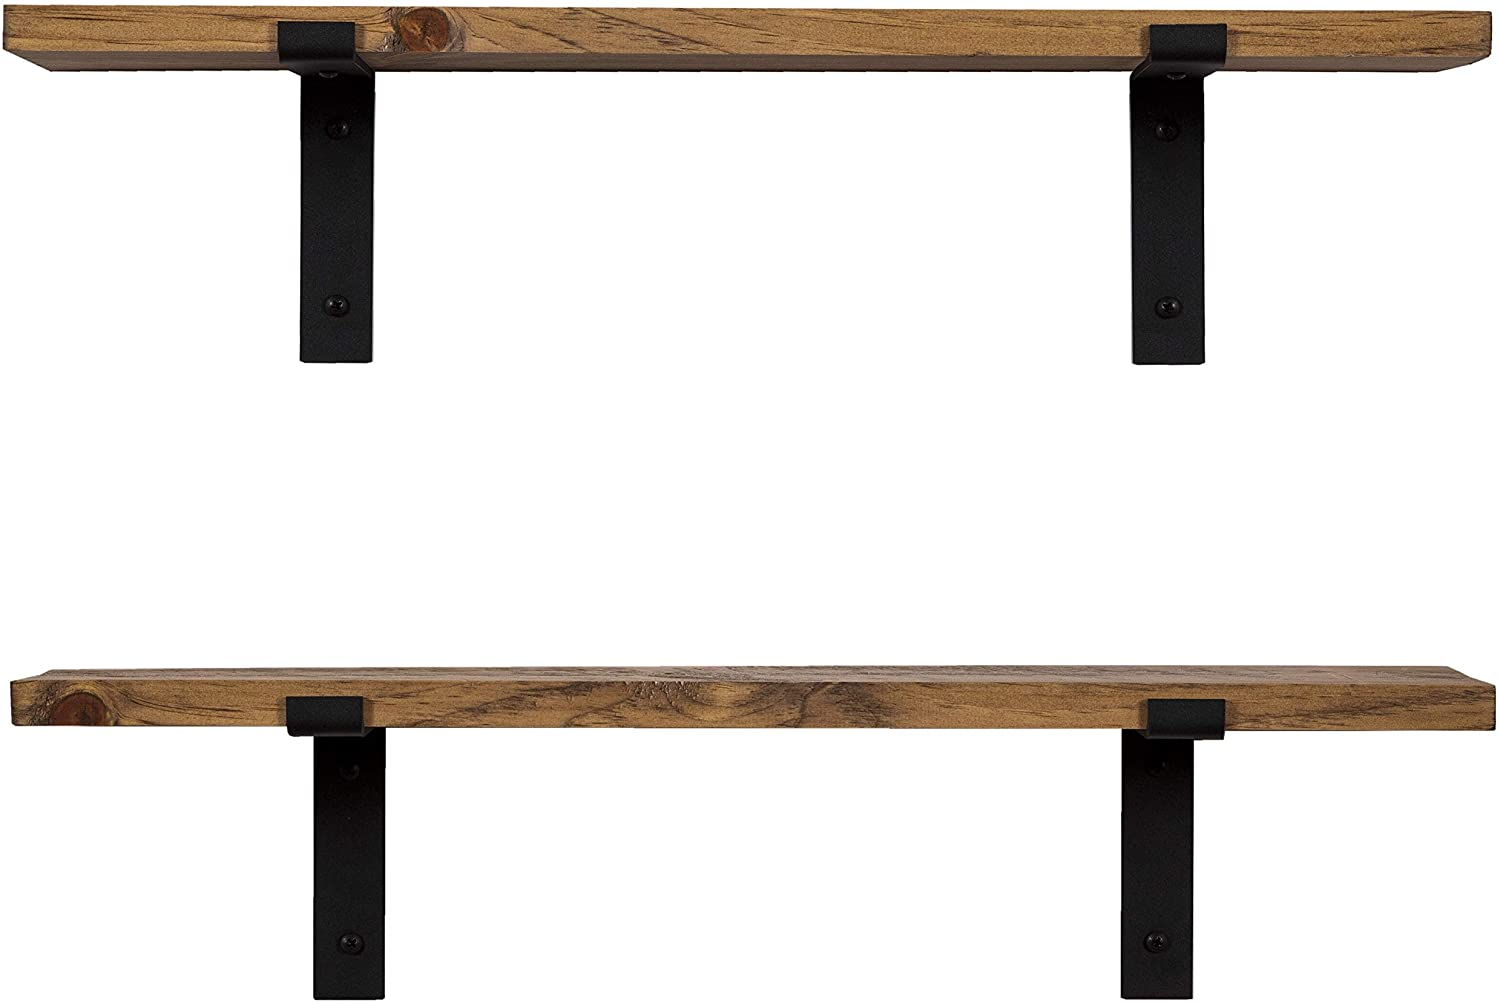 Set of 2 Reclaimed Imperative D/écor Reclaimed Rustic Barnwood Farmhouse Floating Shelves Wall Mounted Wood Storage Shelf with L Brackets USA Handmade 24 x 5.5in